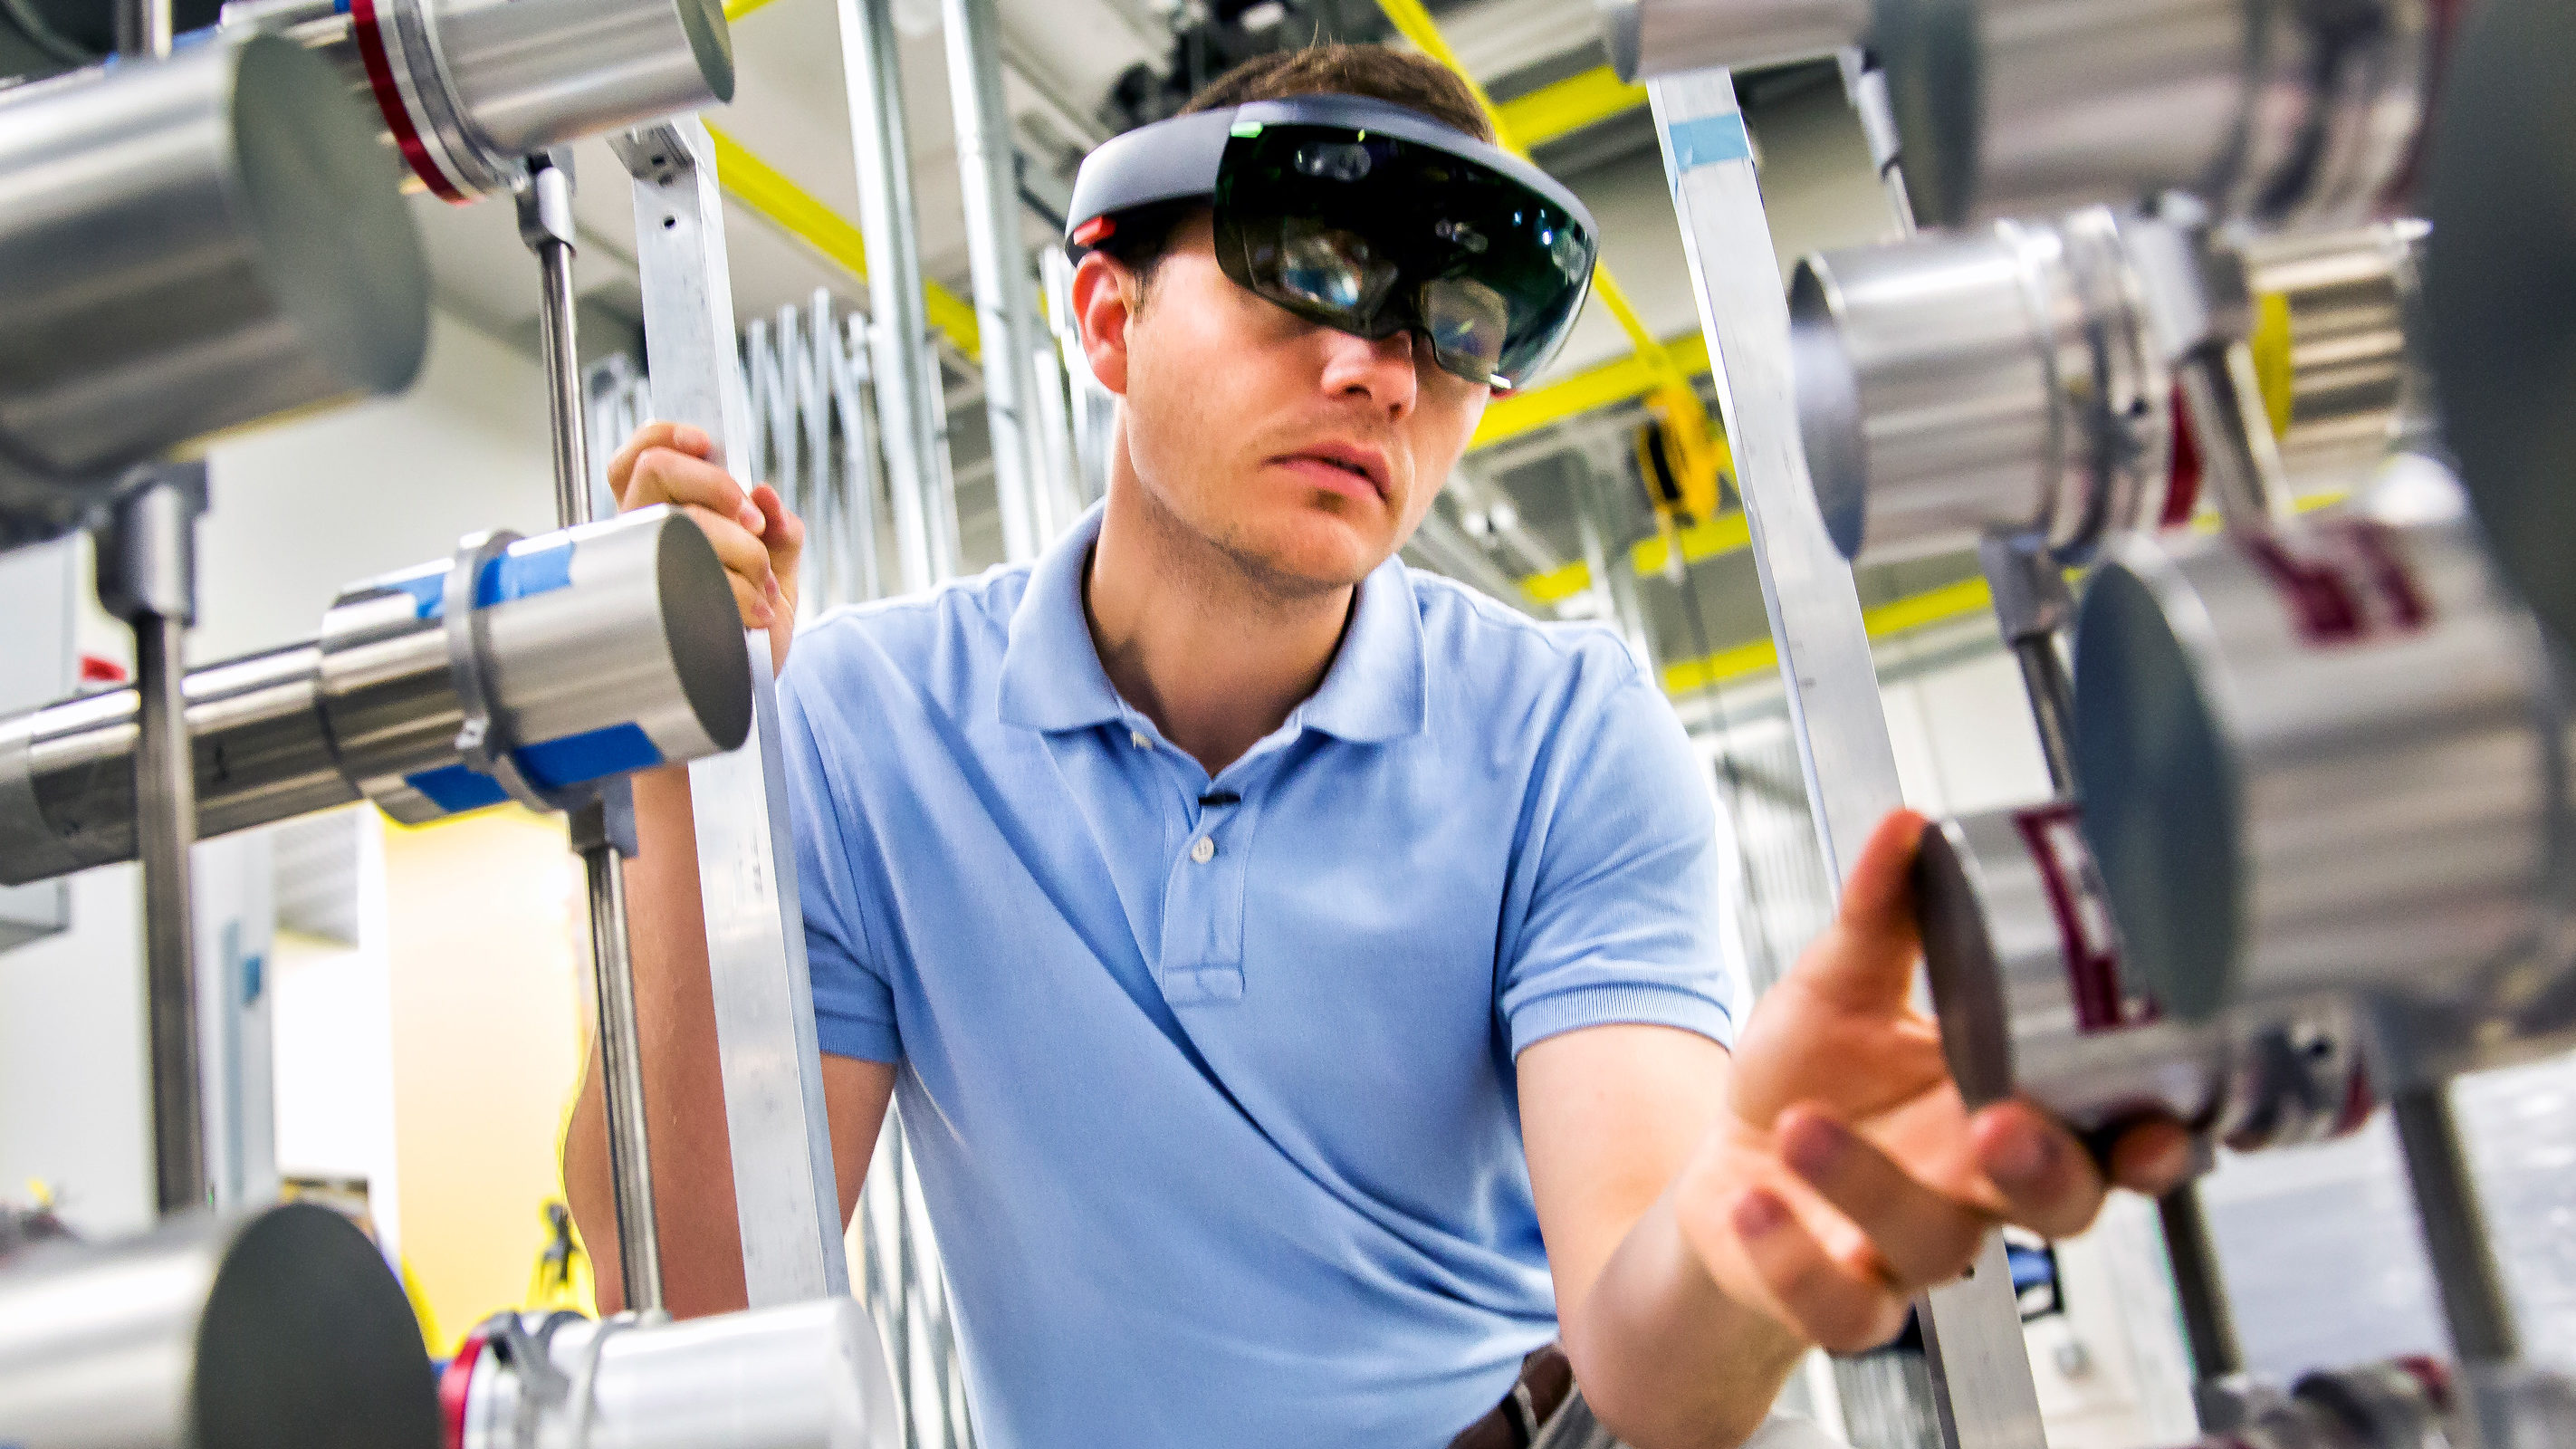 Michael Hamel, NERS Ph.D. Student, uses a Microsoft Hololens headset with a radiation imaging array to demonstrate the use of augmented reality to find nuclear materials hidden in a room. Photo: Joseph Xu